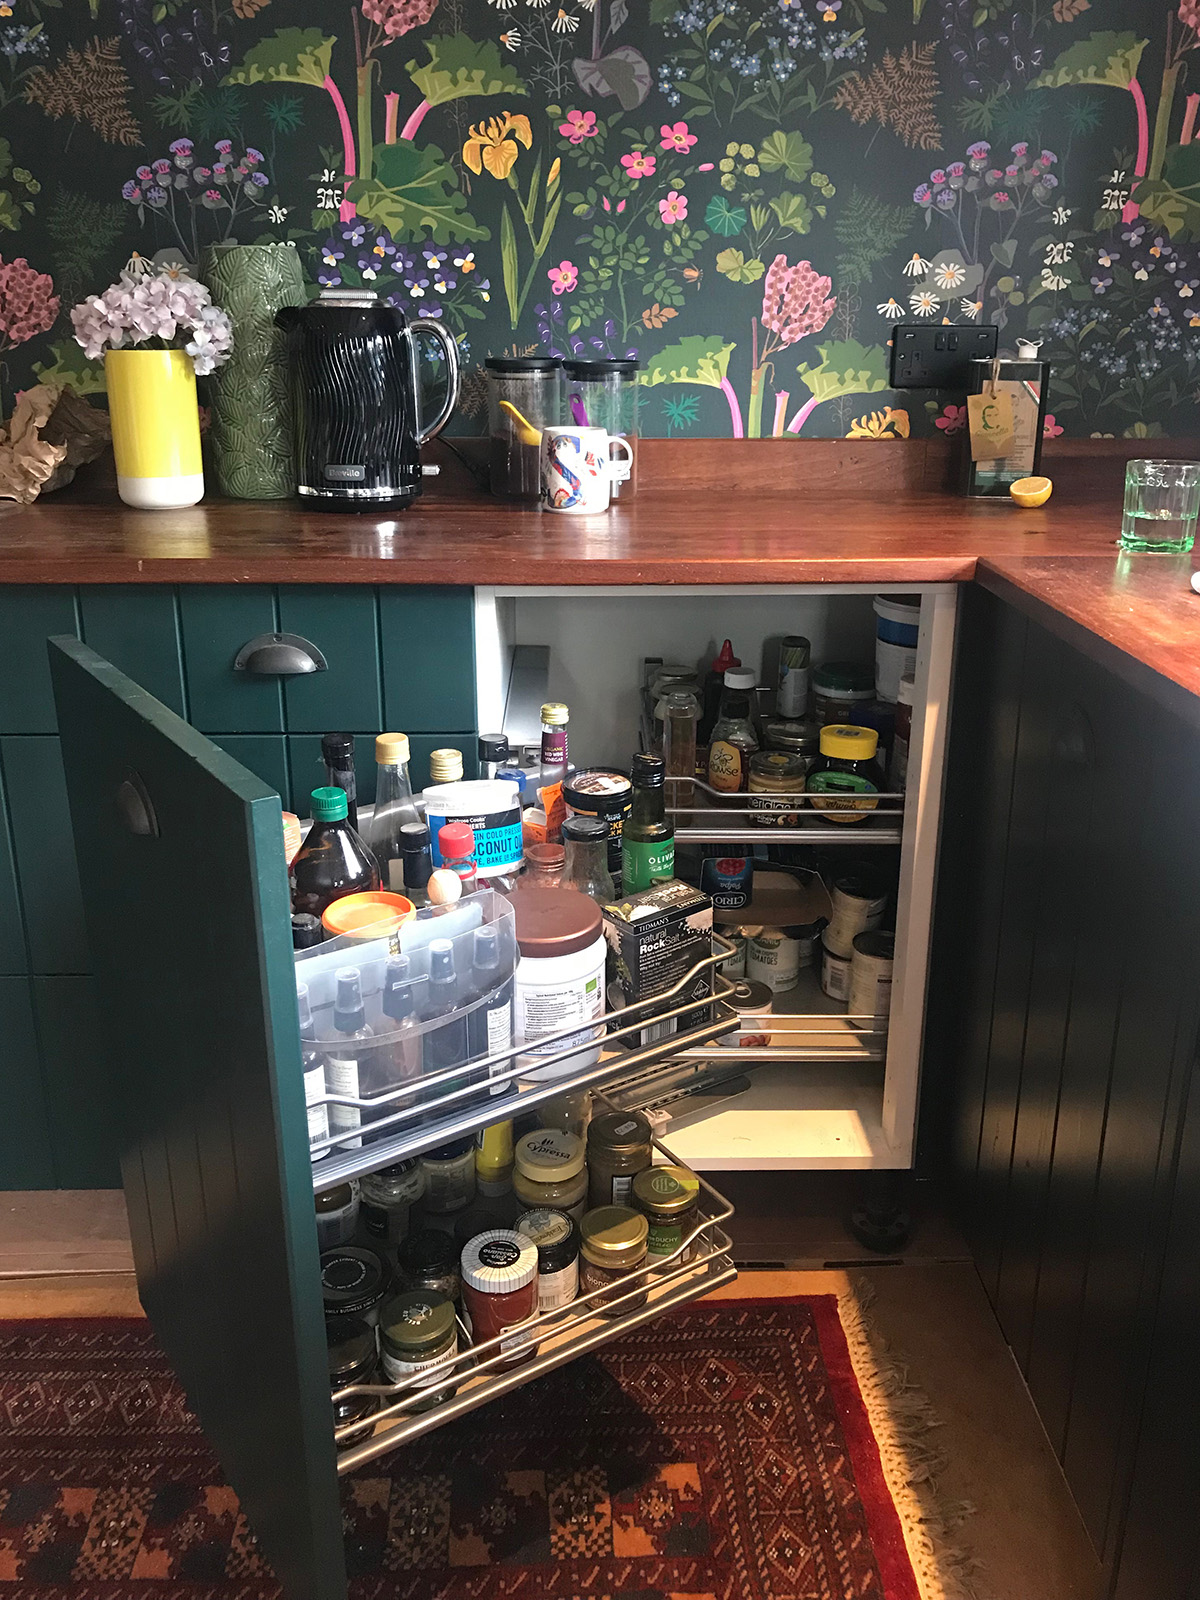 Interior Designer Sophie Robinson's kitchen Boras Tapeter Rabarber bright floral and rhubarb plants on dark green background wallpaper and corner unit